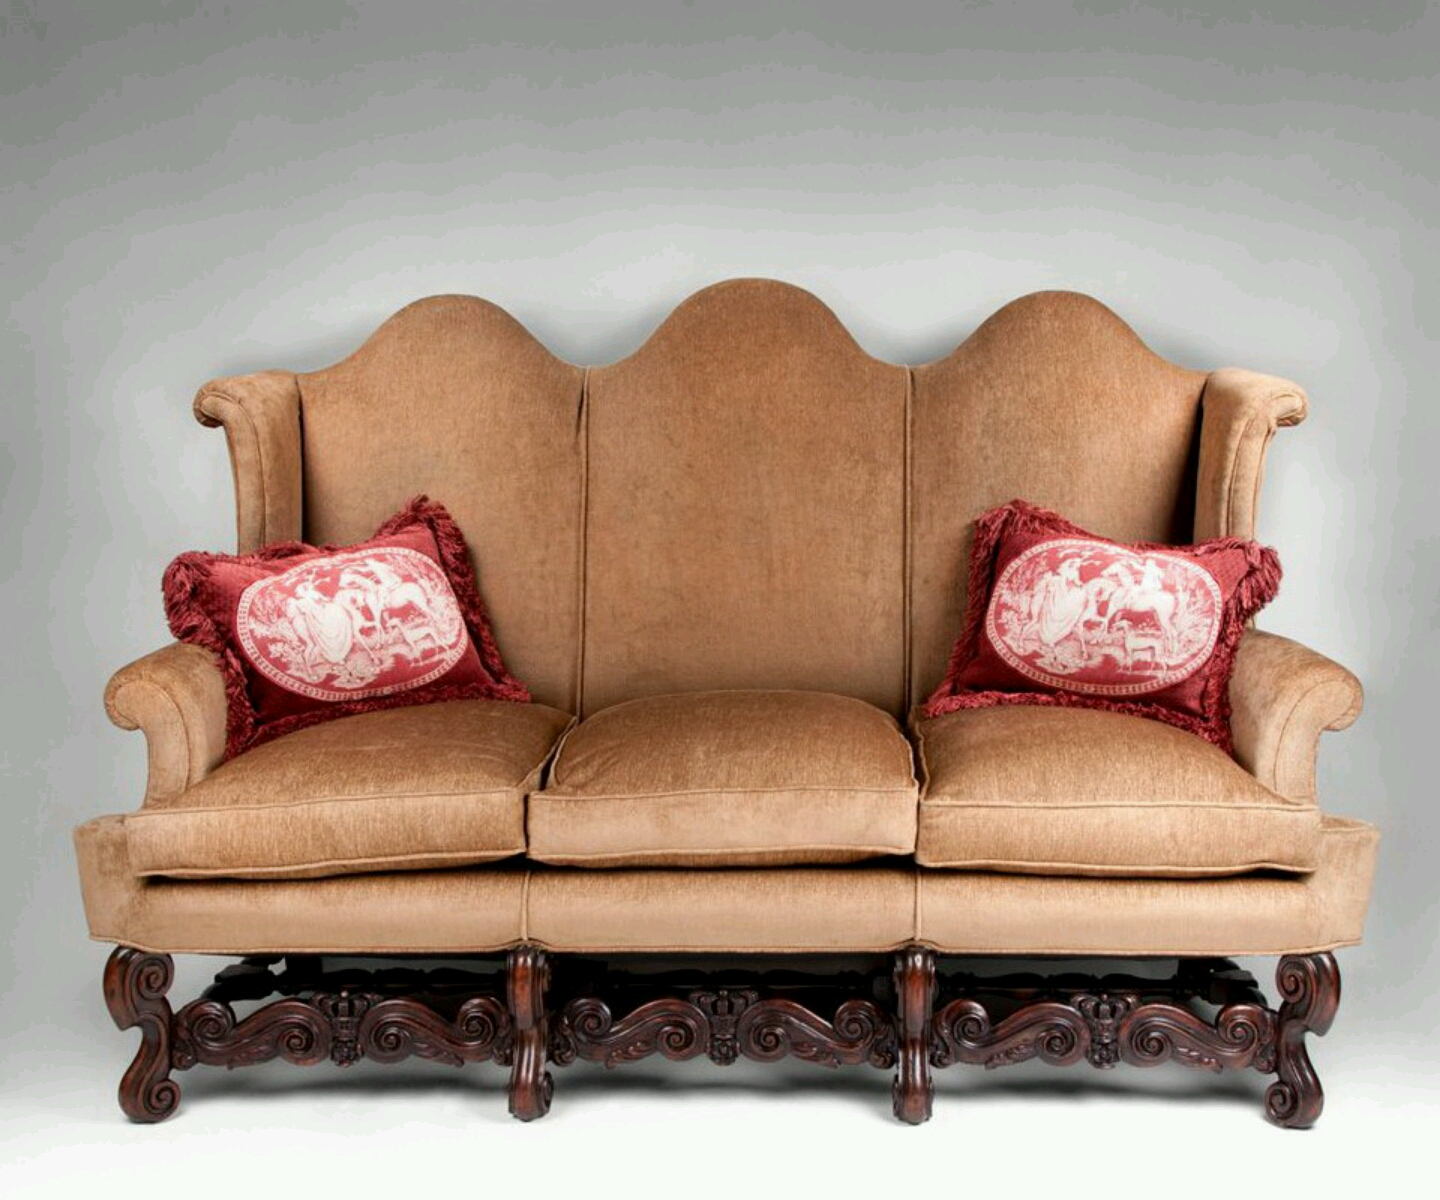 Modern Sofa Chair Designs: Beautiful Modern Sofa Furniture Designs.